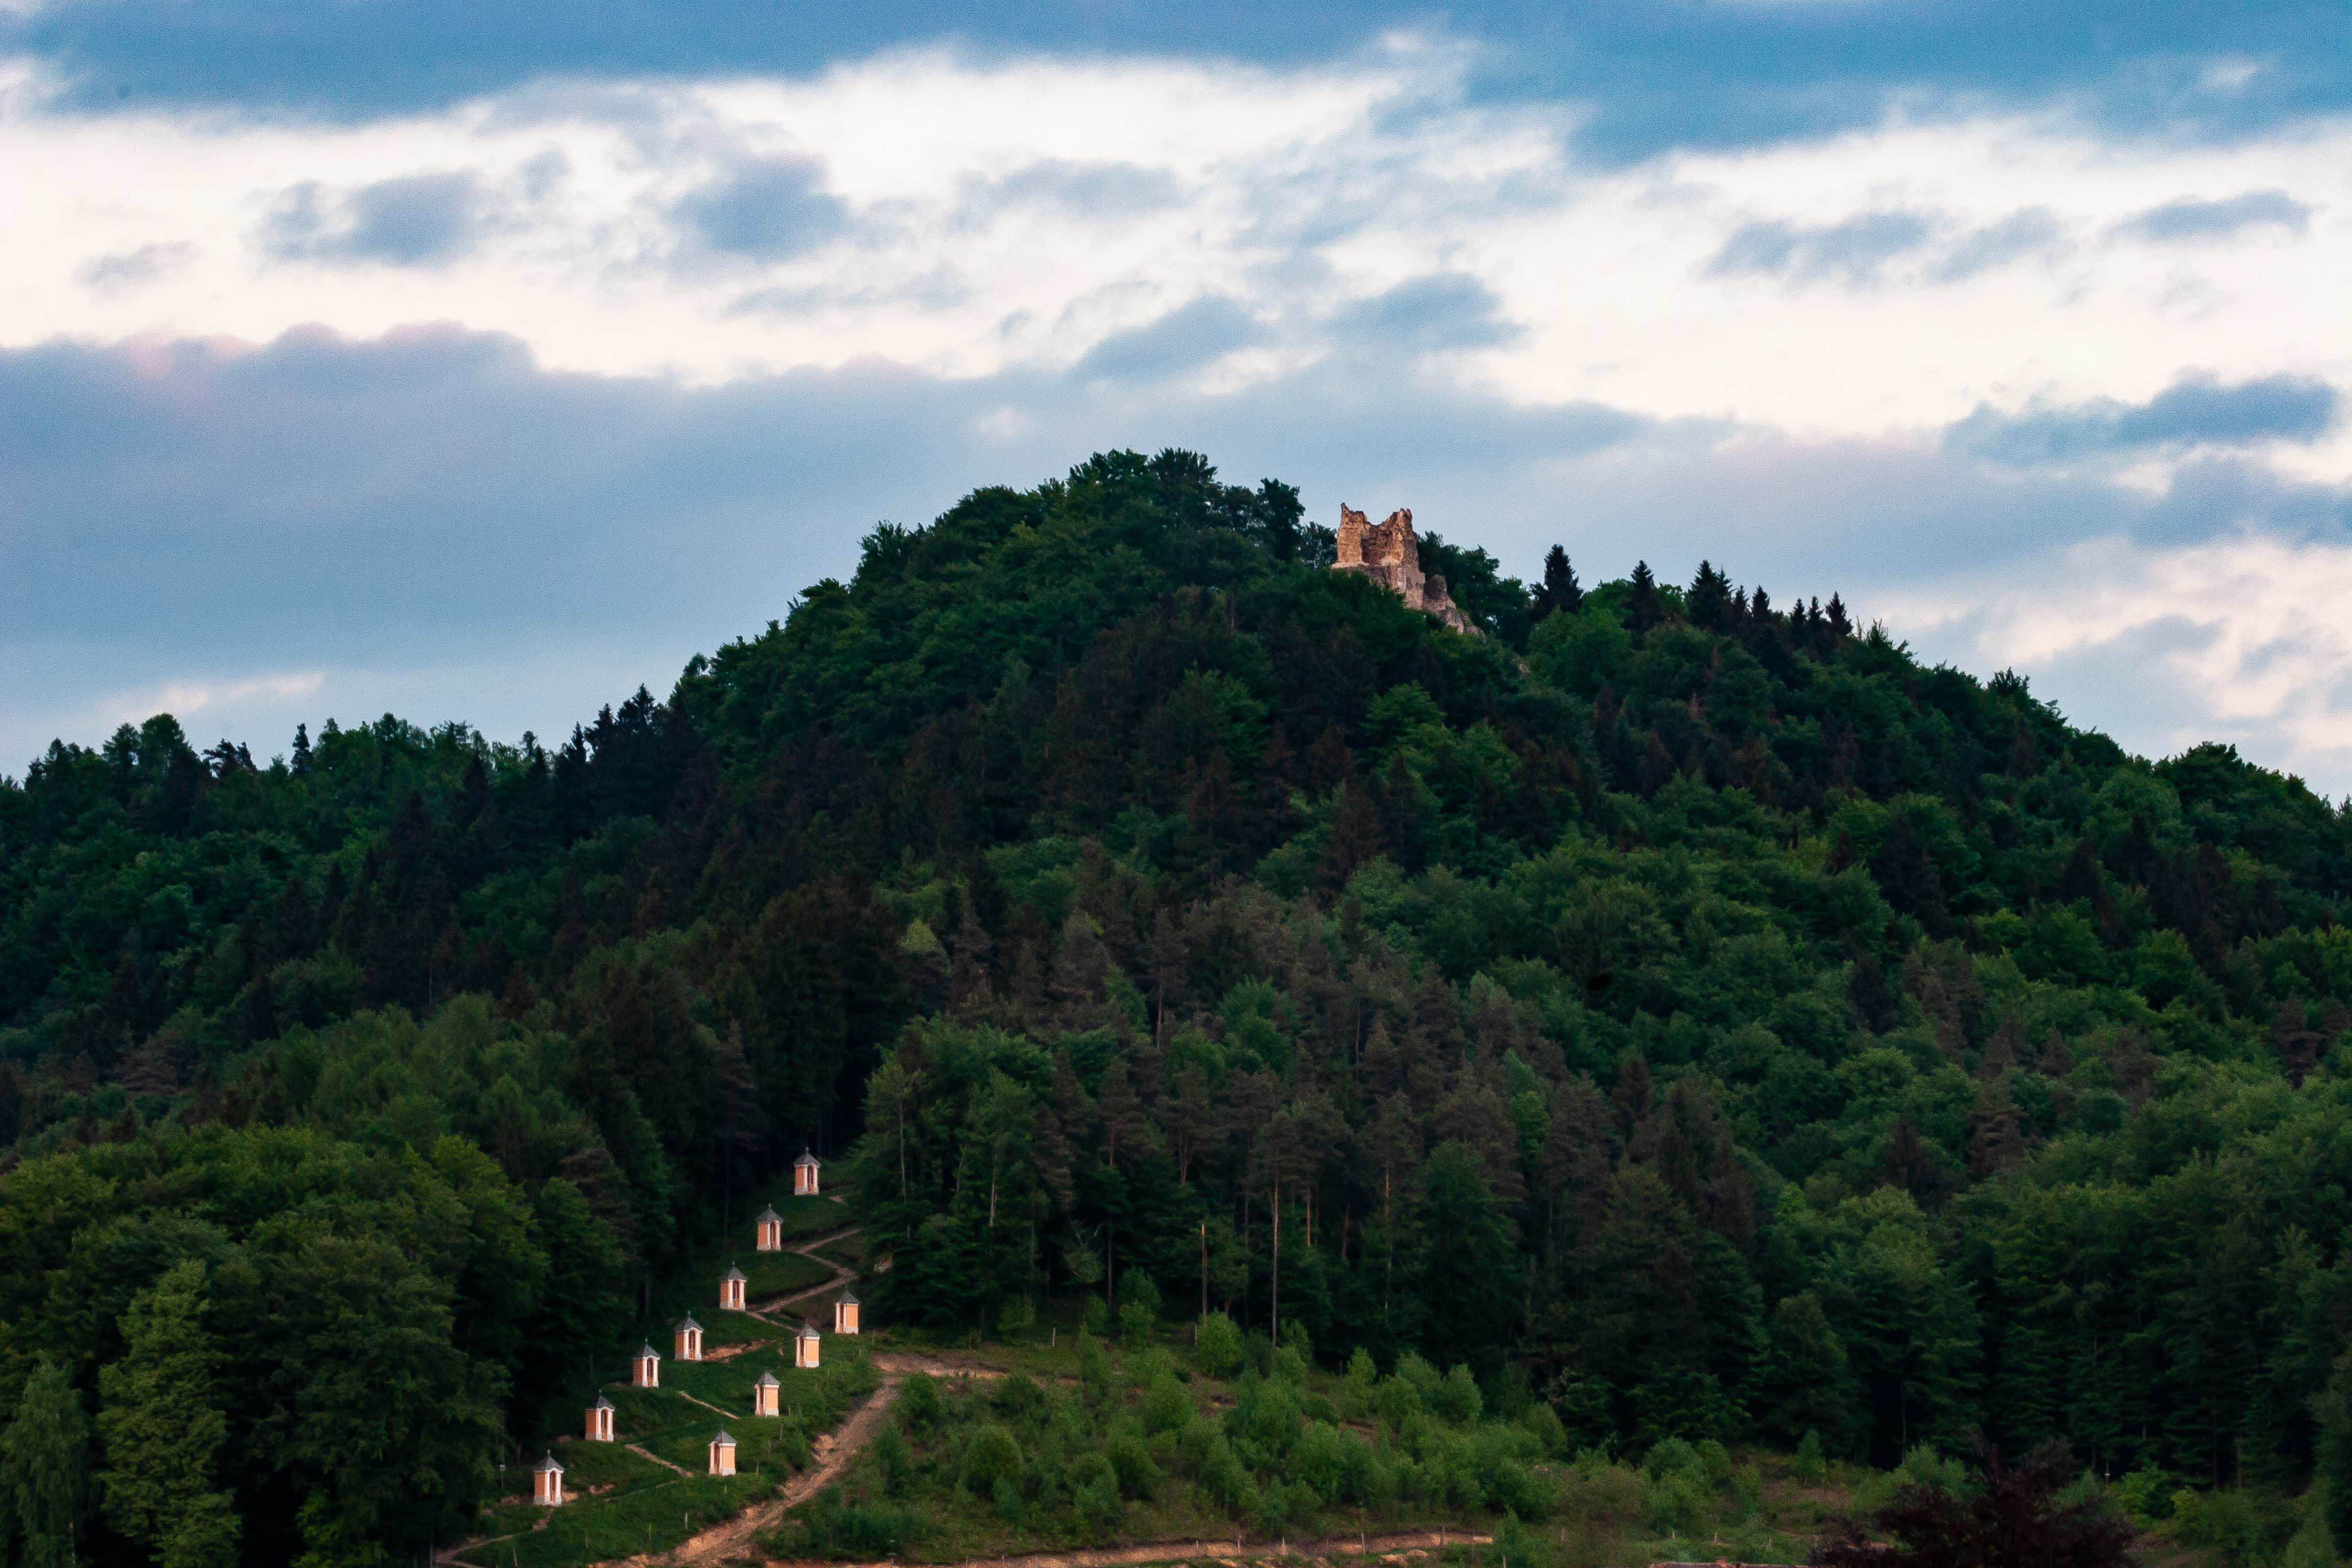 Slovenia, Medvode Prov, Path And Castle, 2006, IMG 5935